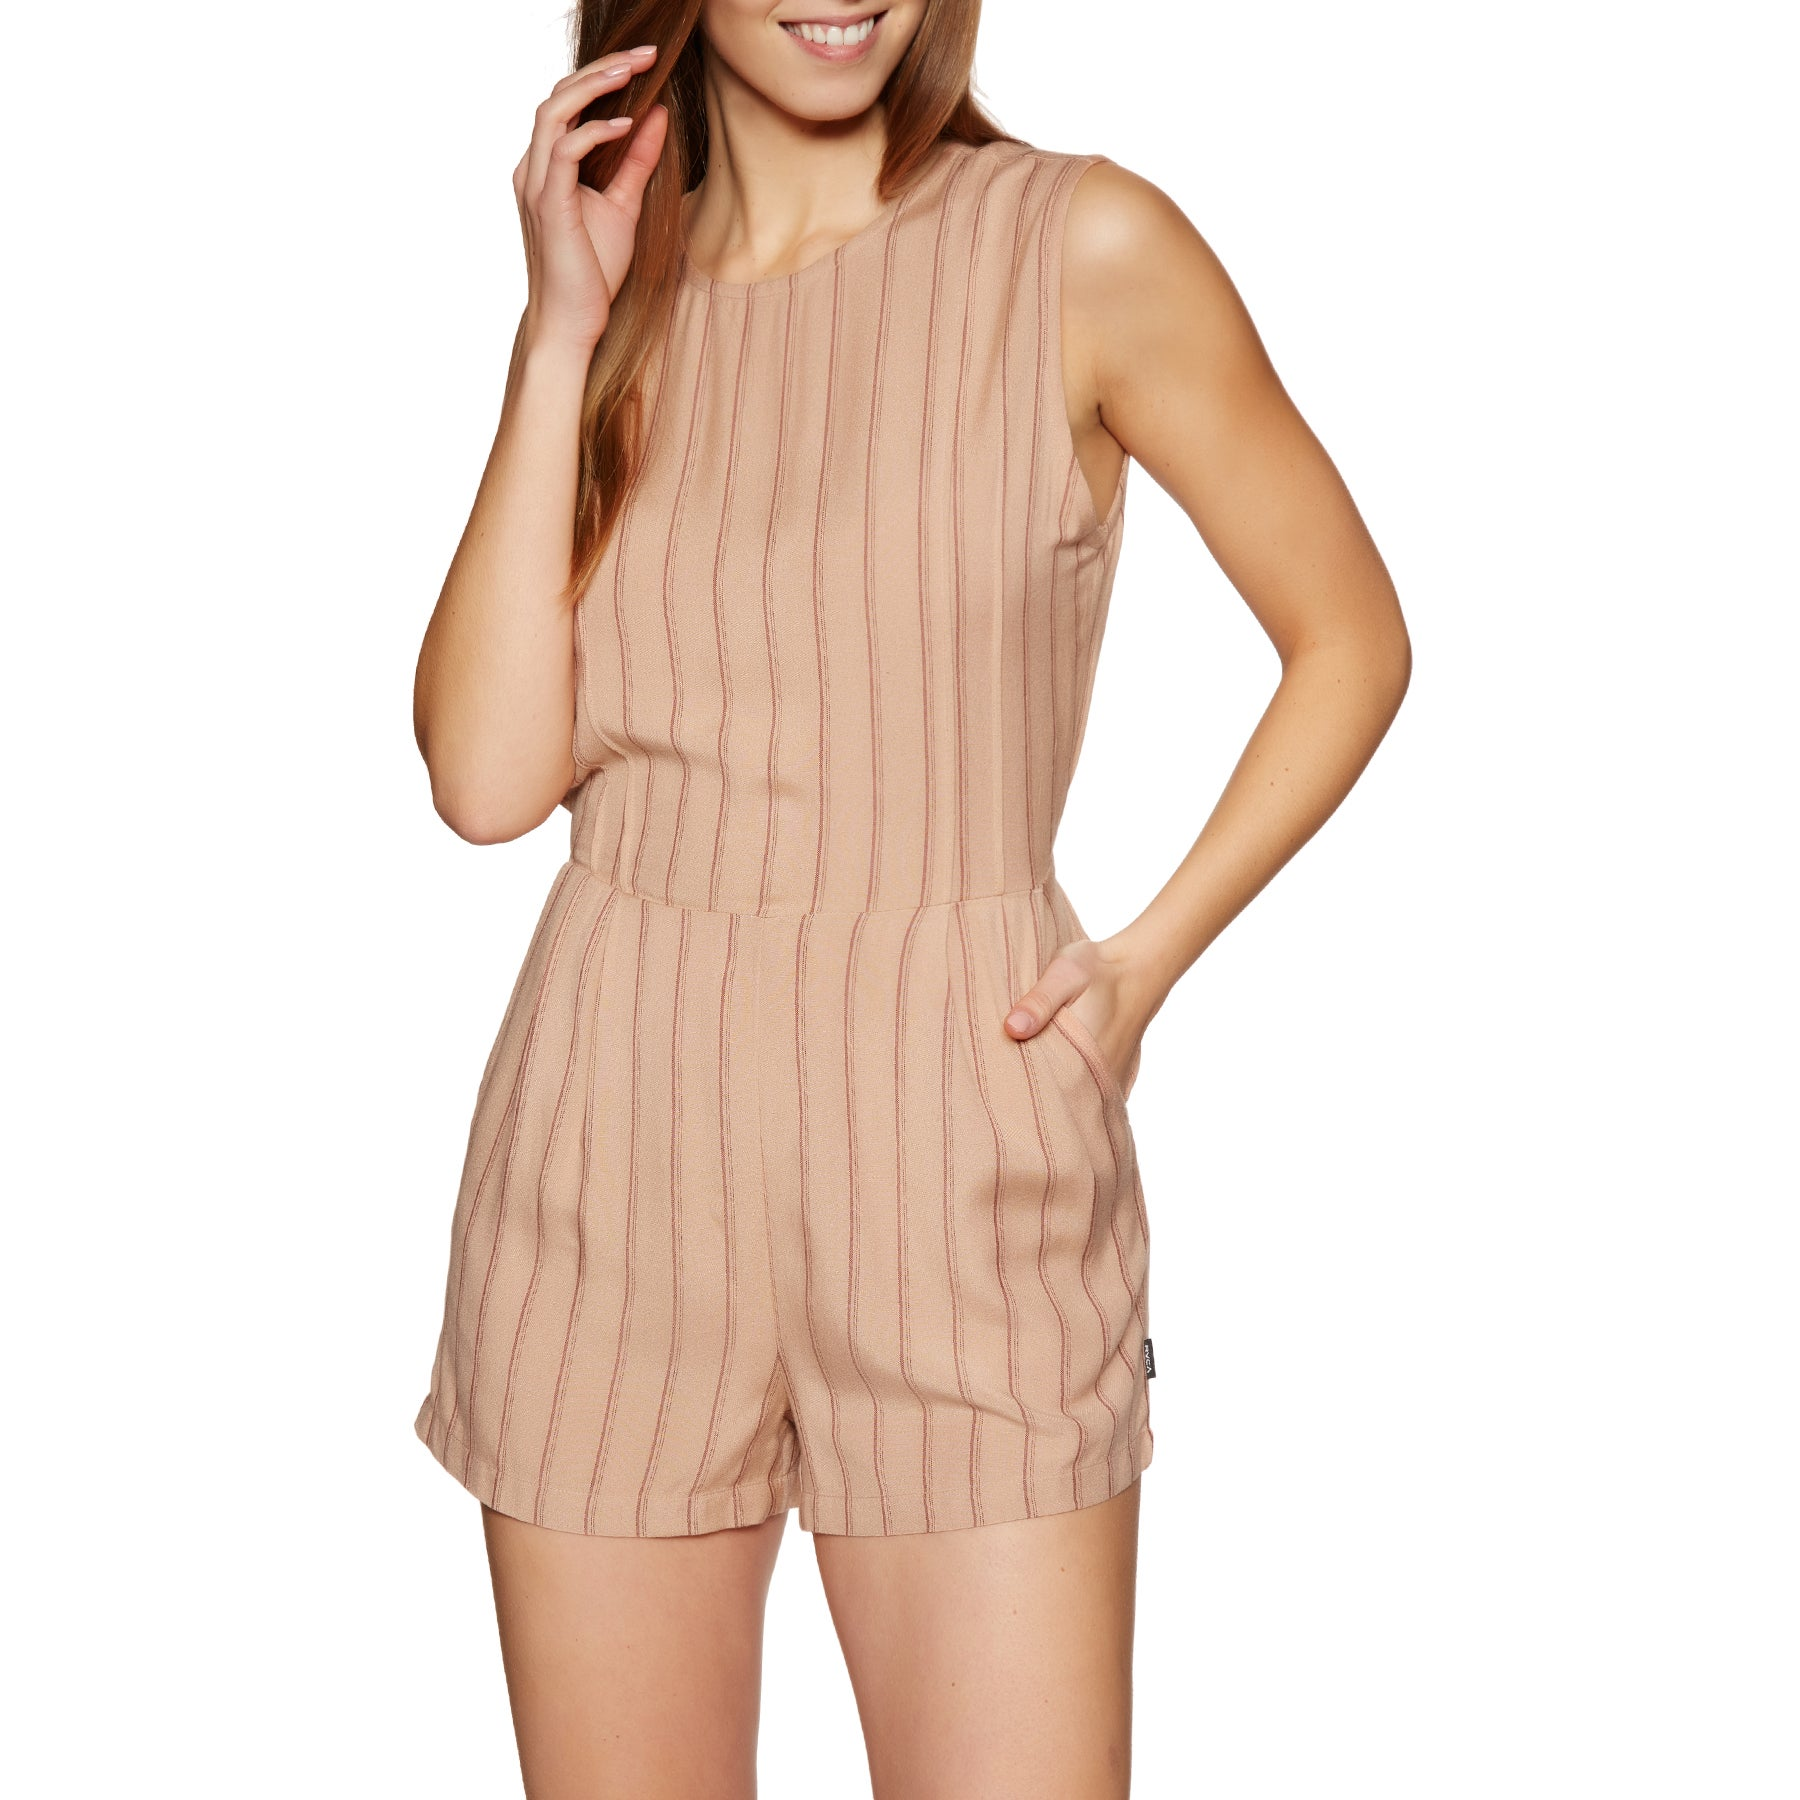 RVCA Tucked In Ladies Playsuit